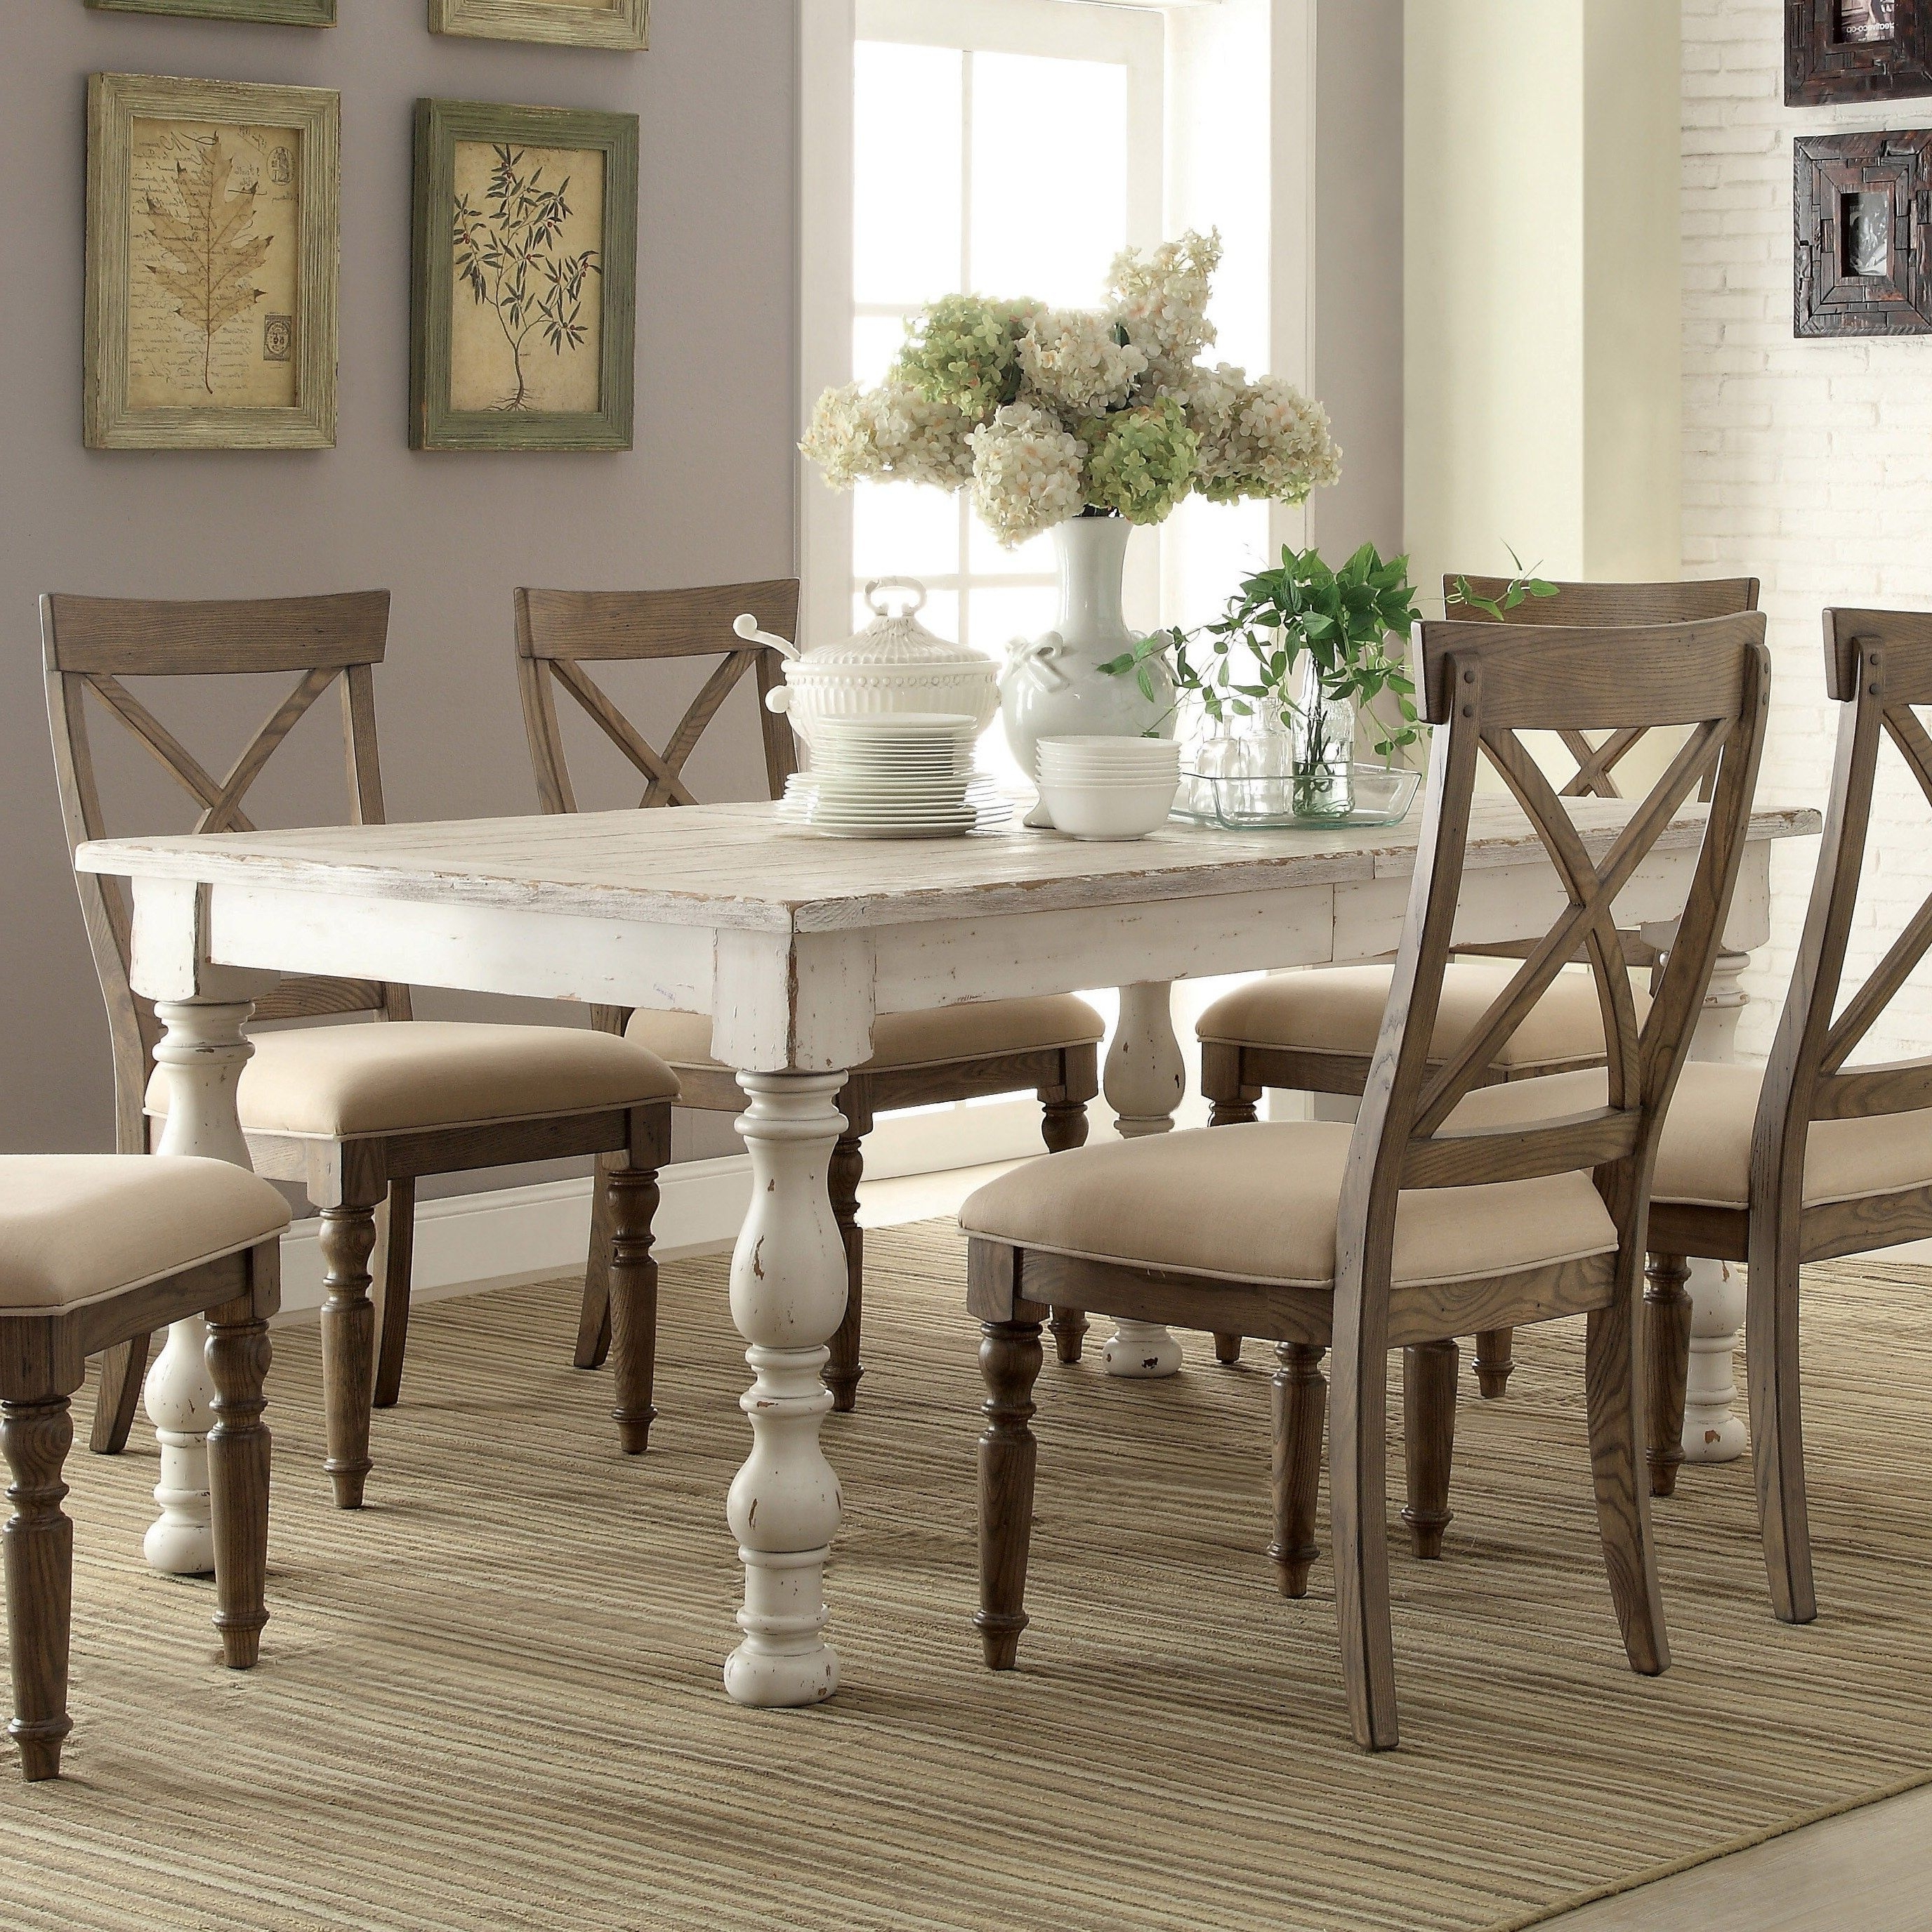 White Dining Tables Sets In Favorite Aberdeen Wood Rectangular Dining Table Only In Weathered Worn White (View 19 of 25)